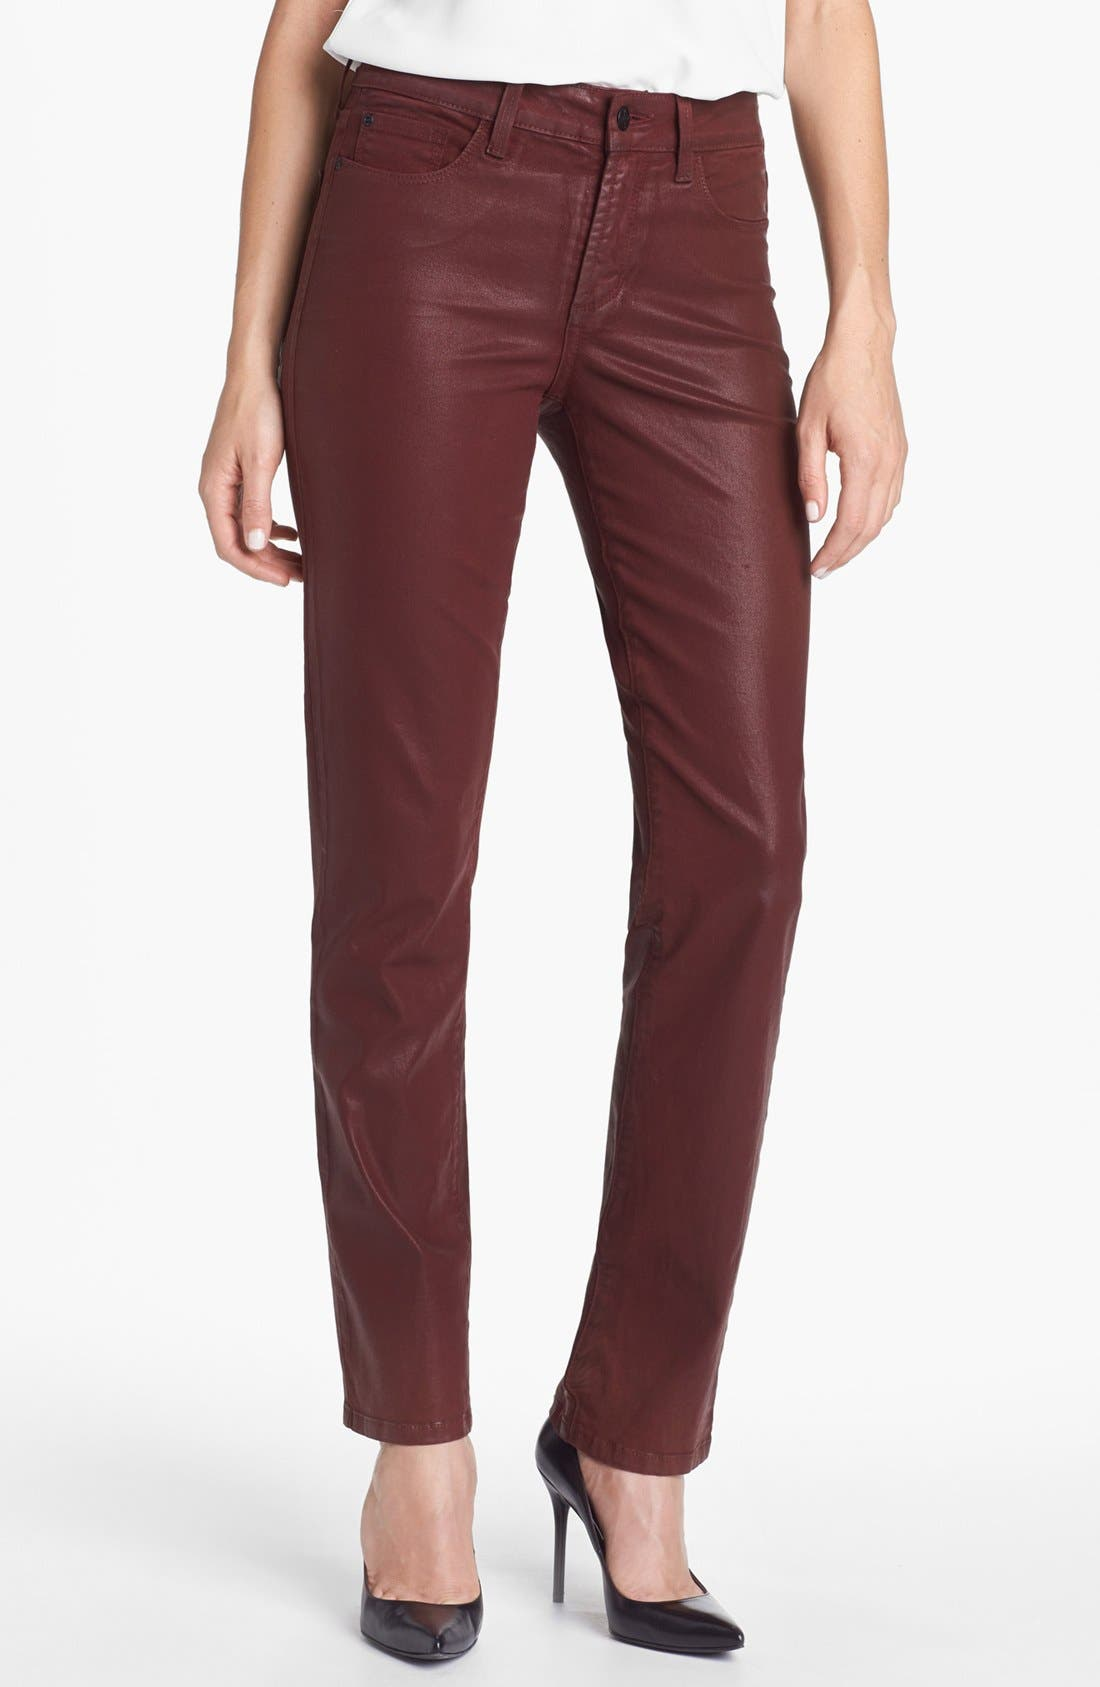 Main Image - NYDJ 'Sheri' Coated Stretch Skinny Jeans